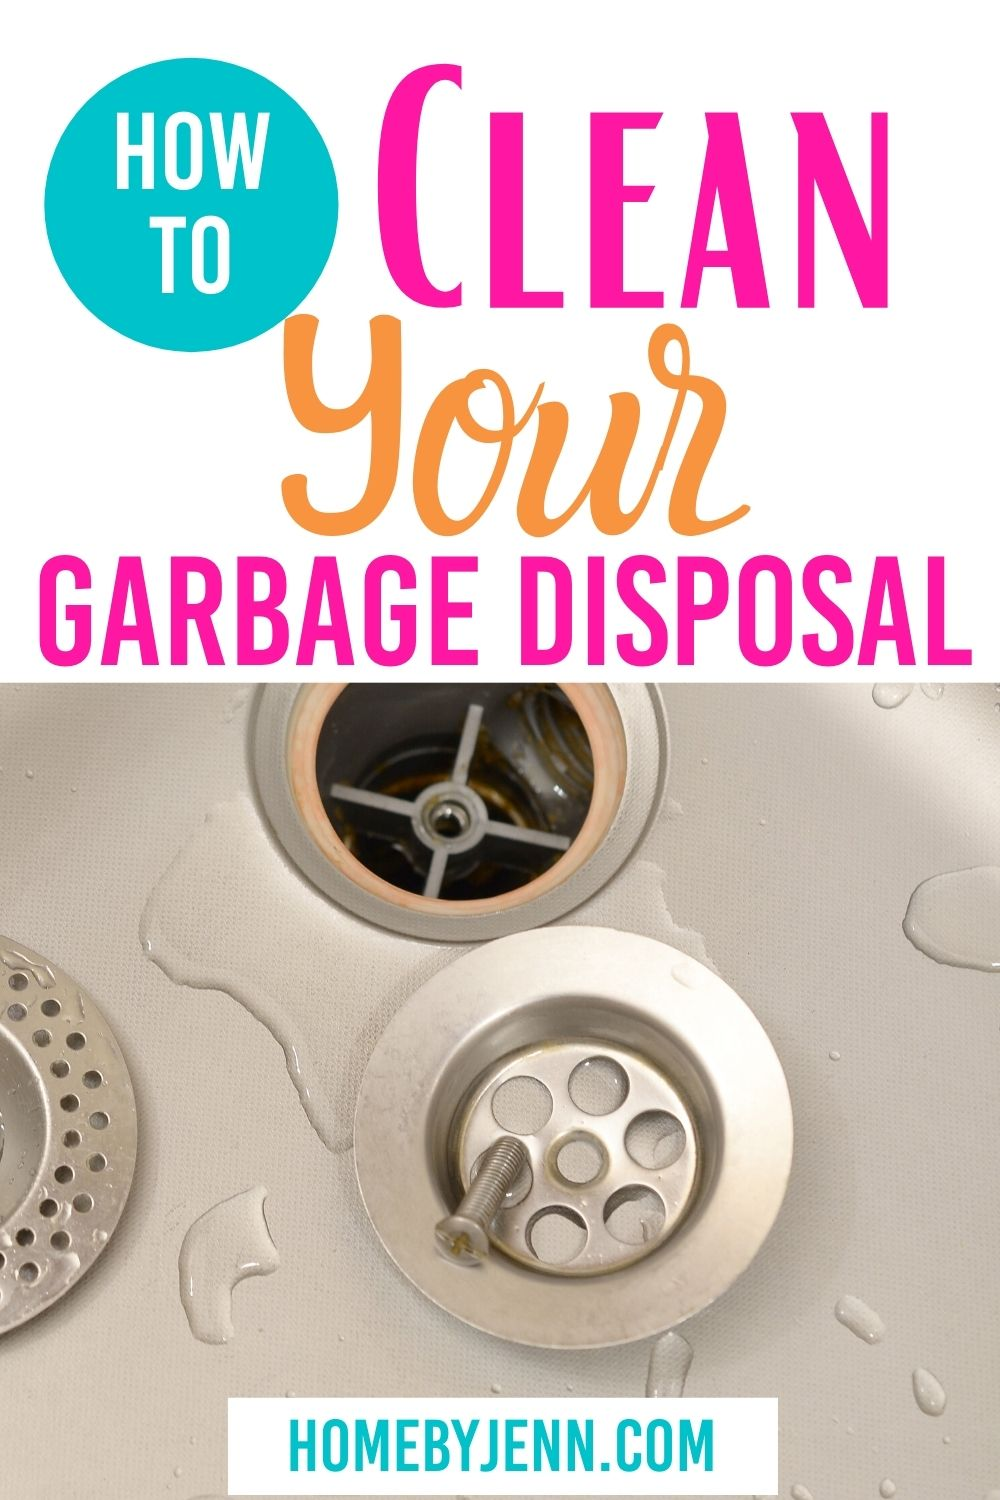 Don't stress out over how to clean your garbage disposal! These simple tips will have it good as new in no time at all, plus it will smell great! #cleaningtips #cleaningtipsandtrick #cleaninghacks #garbagedisposal #howtocleanagarbagedisposal via @homebyjenn